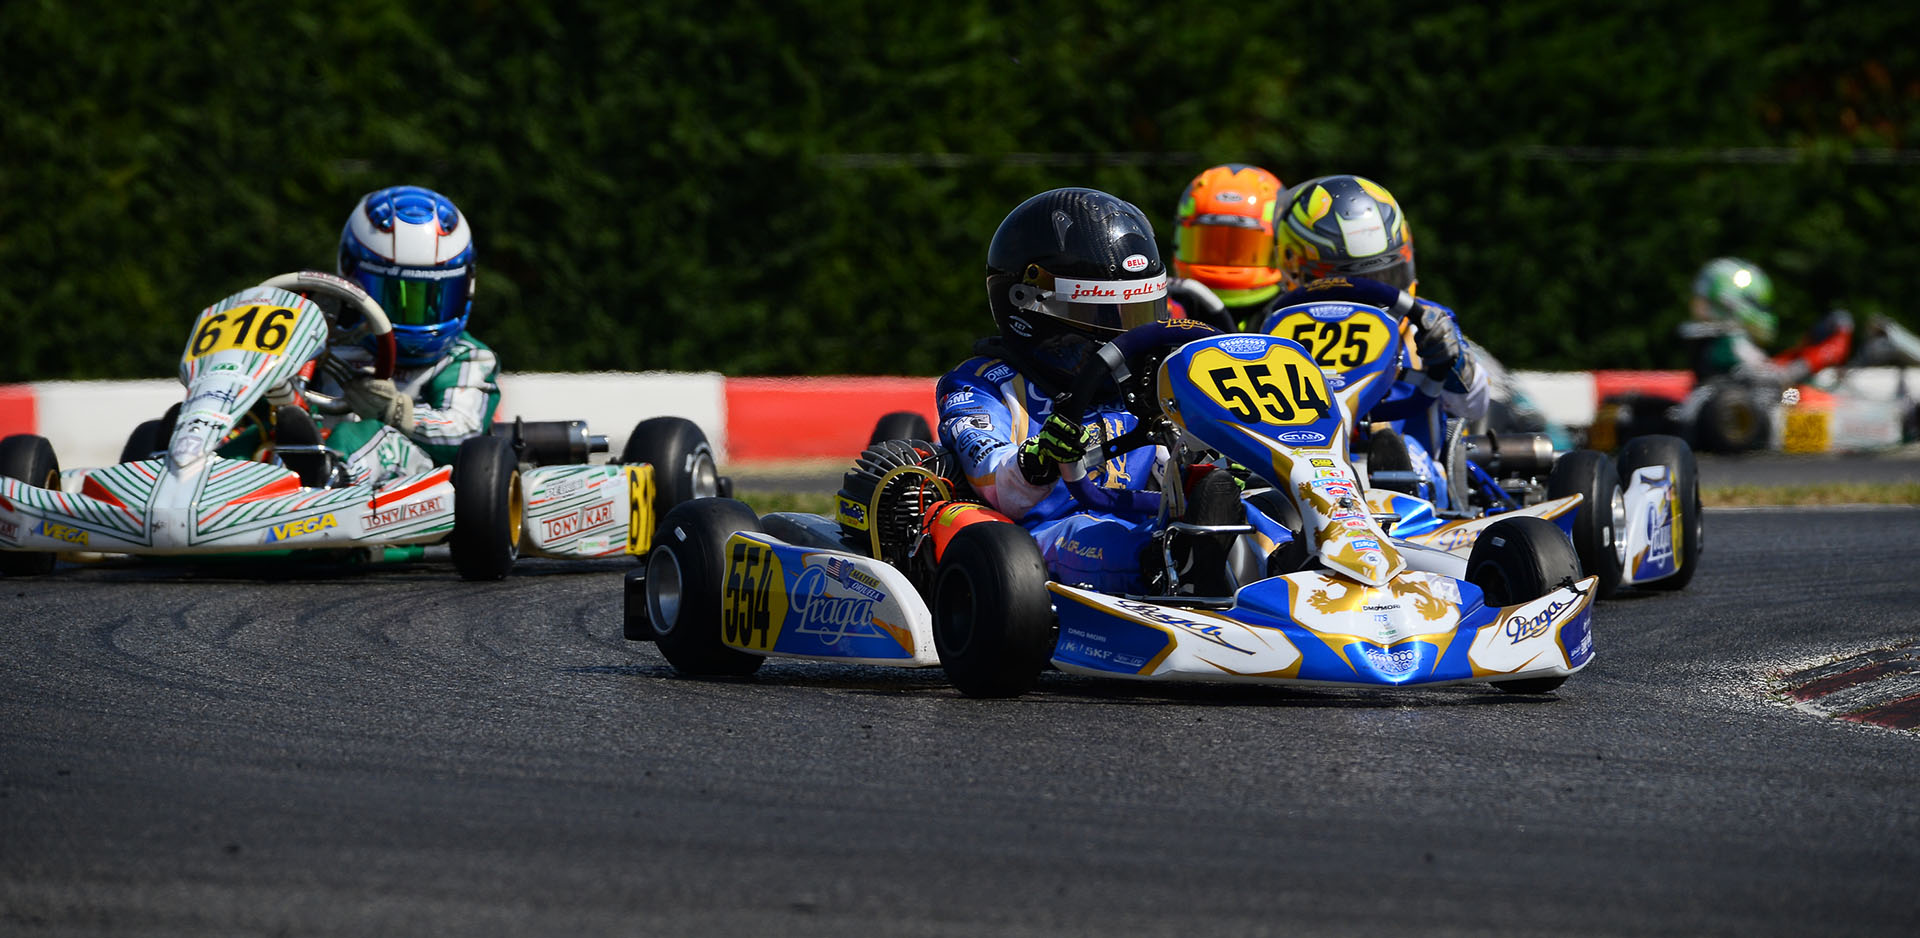 A high level of partecipation for IPKarting at the WSK Euro Series in Lonato